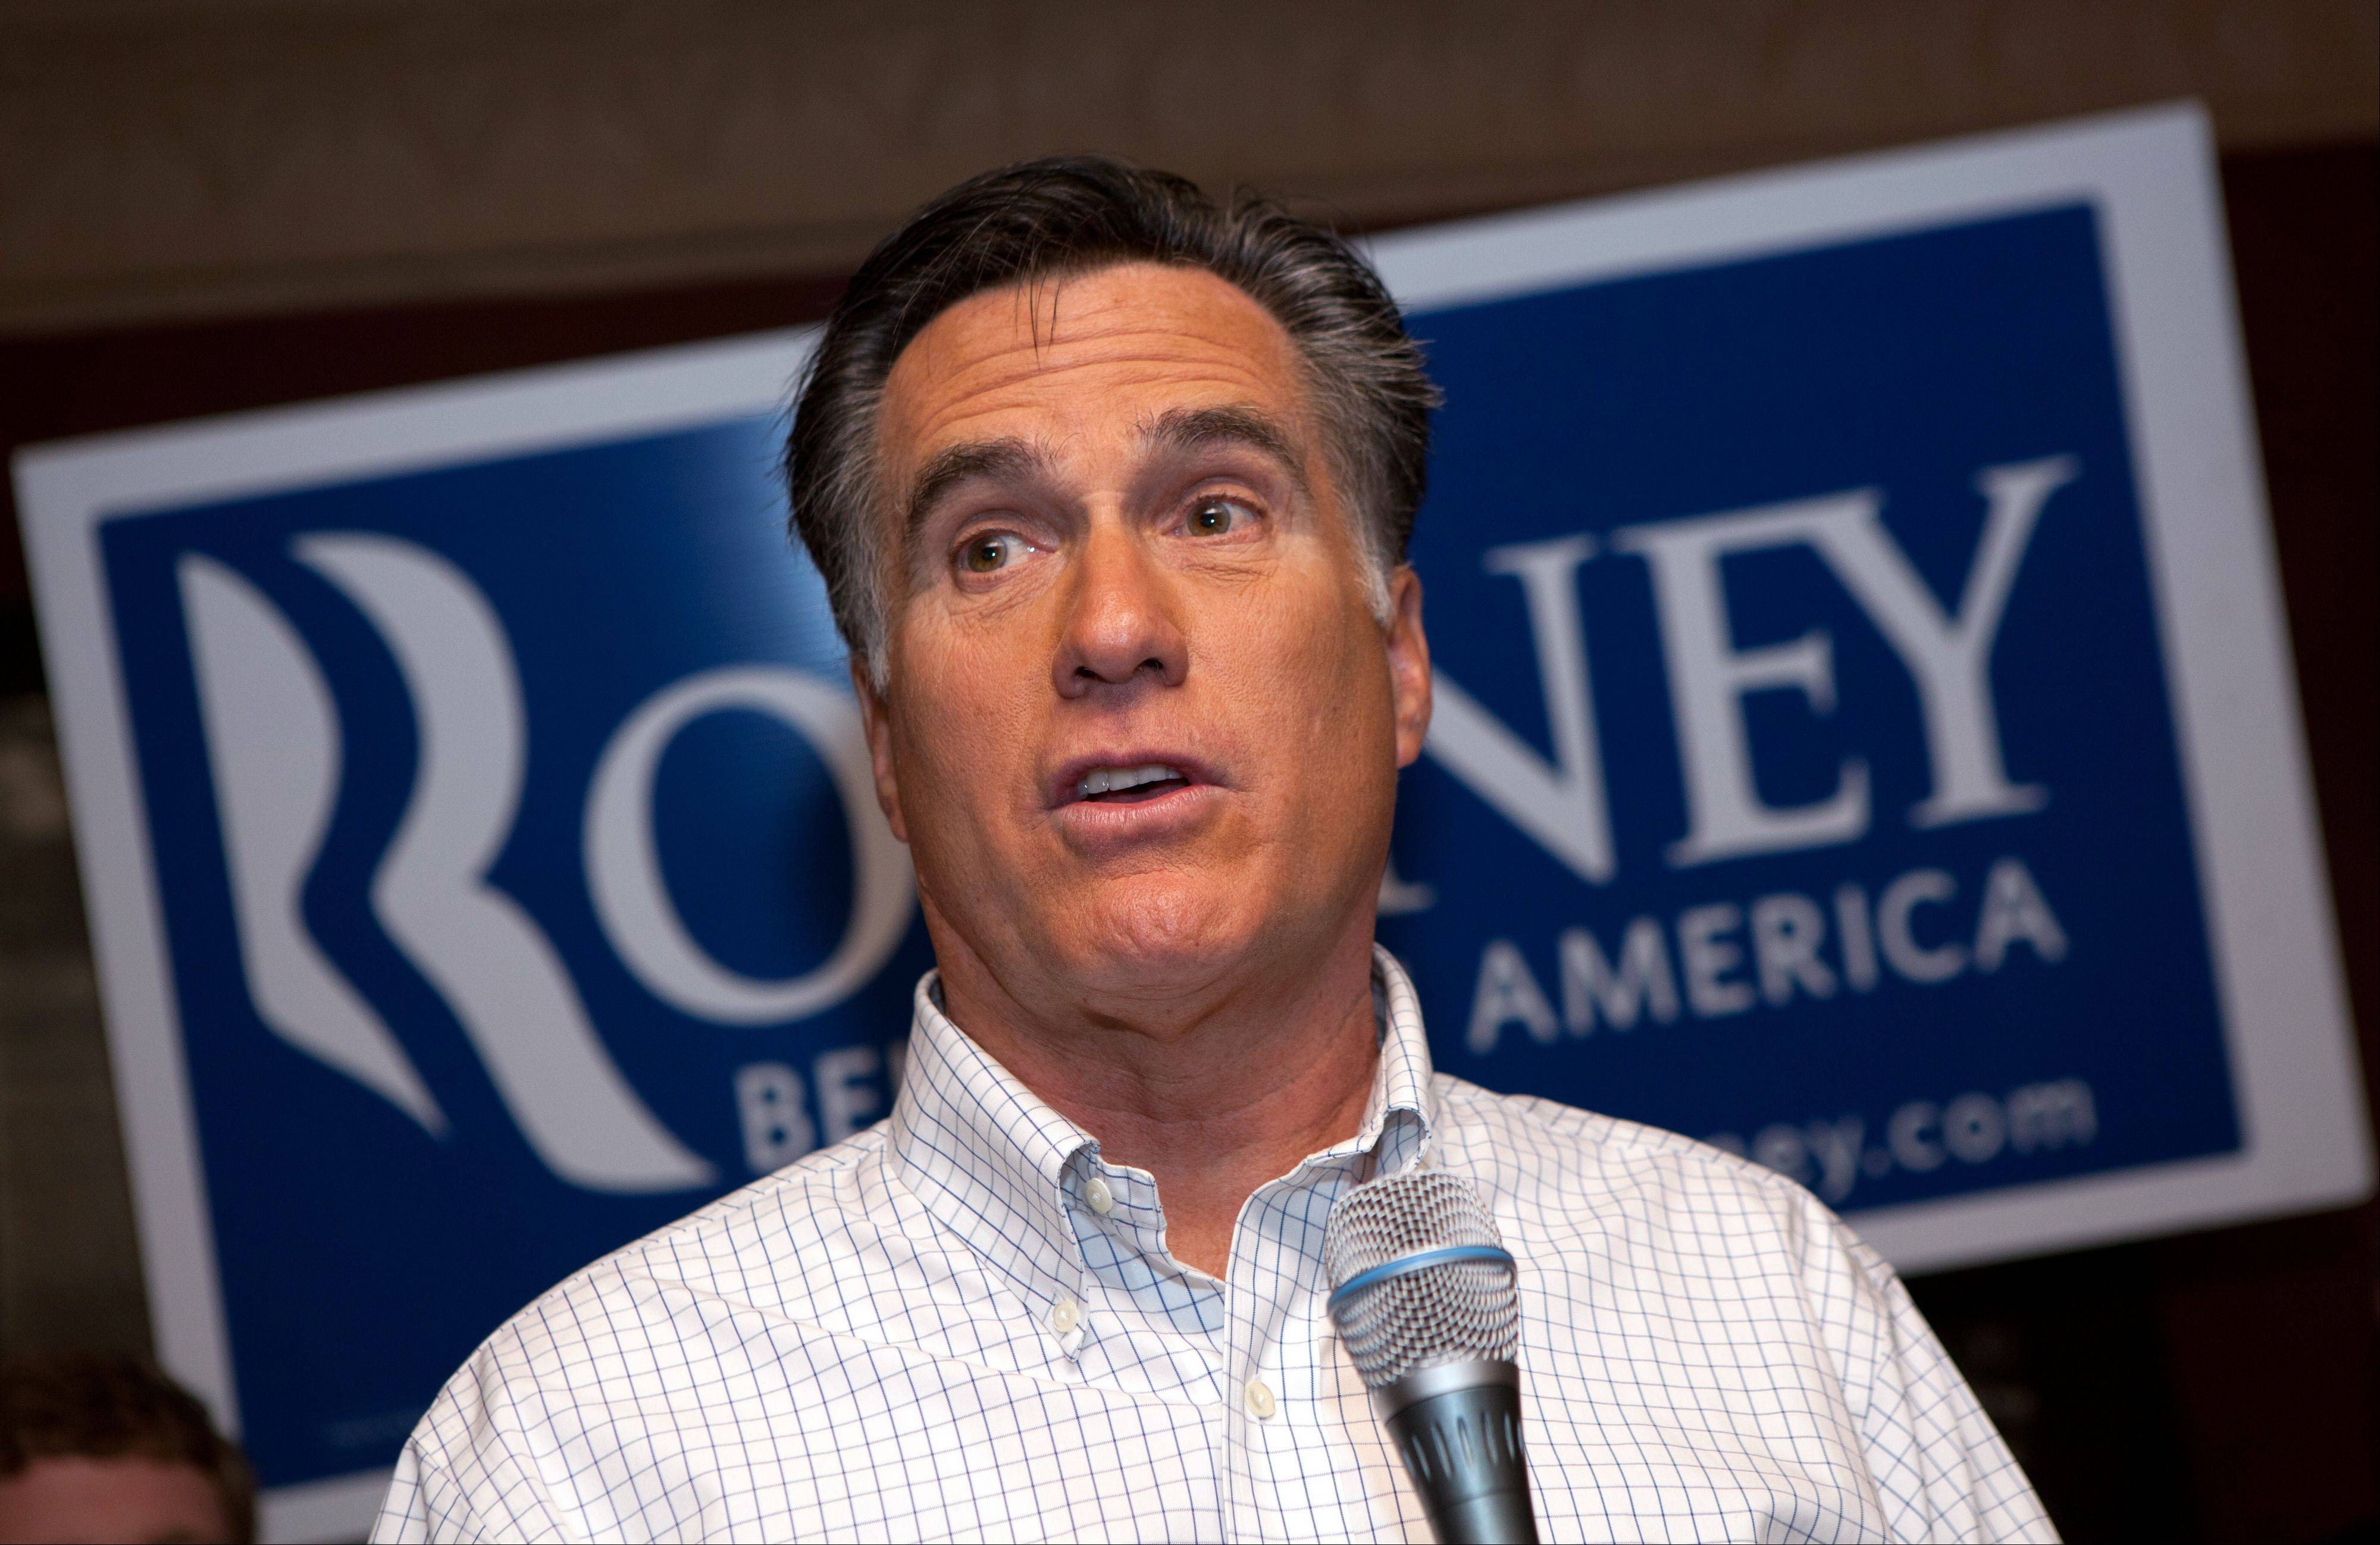 Former Republican presidential candidate Mitt Romney, little seen since his failed White House bid a year ago, on Sunday accused President Barack Obama of �fundamental dishonesty� regarding the Affordable Care Act.